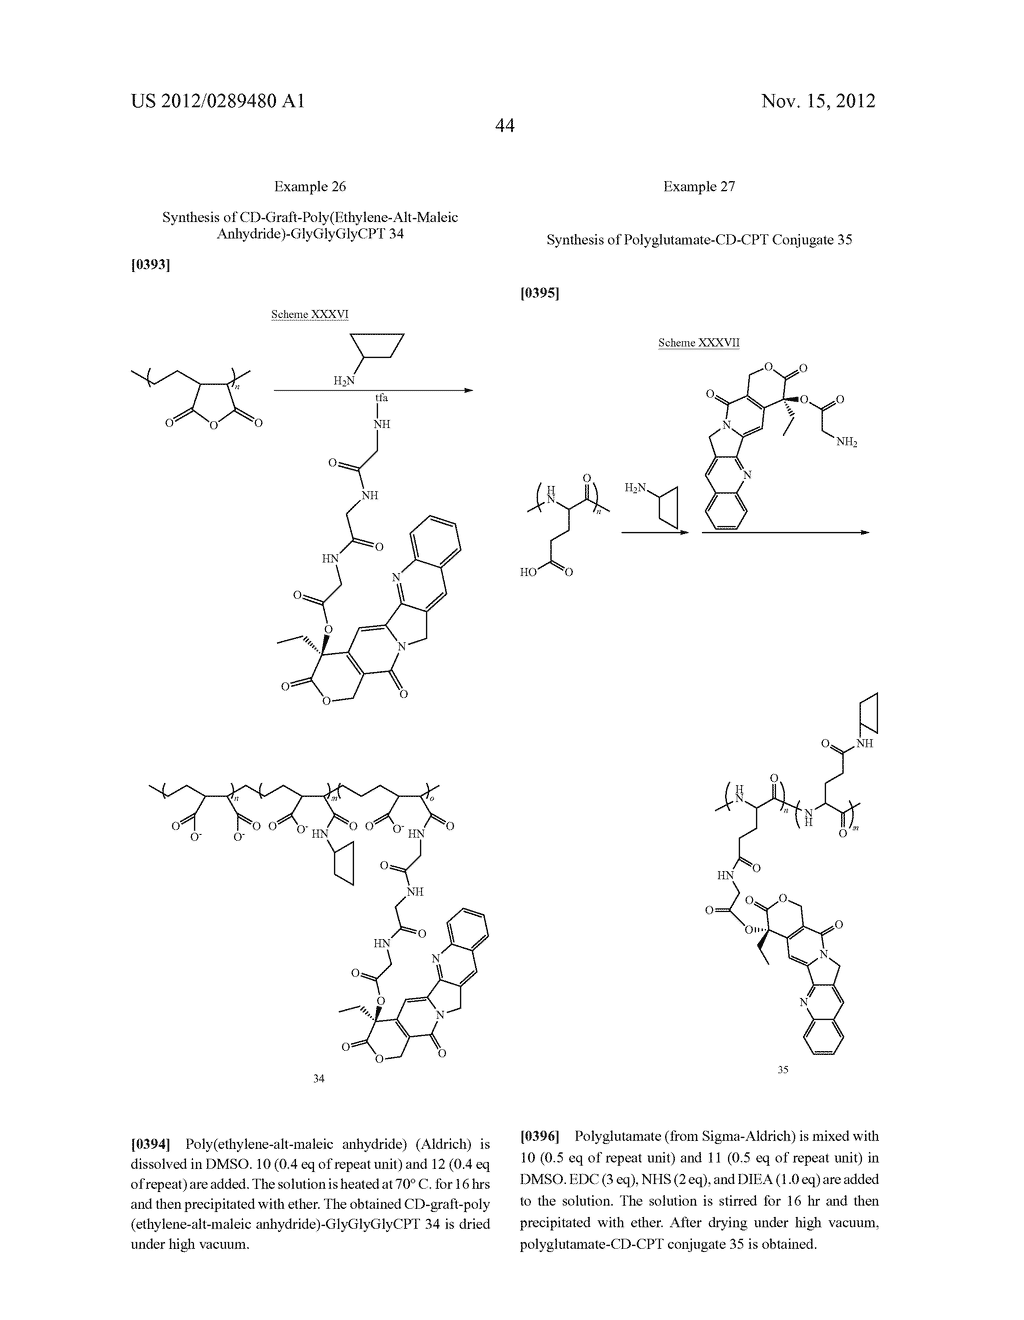 CYCLODEXTRIN-BASED POLYMERS FOR THERAPEUTICS DELIVERY - diagram, schematic, and image 56